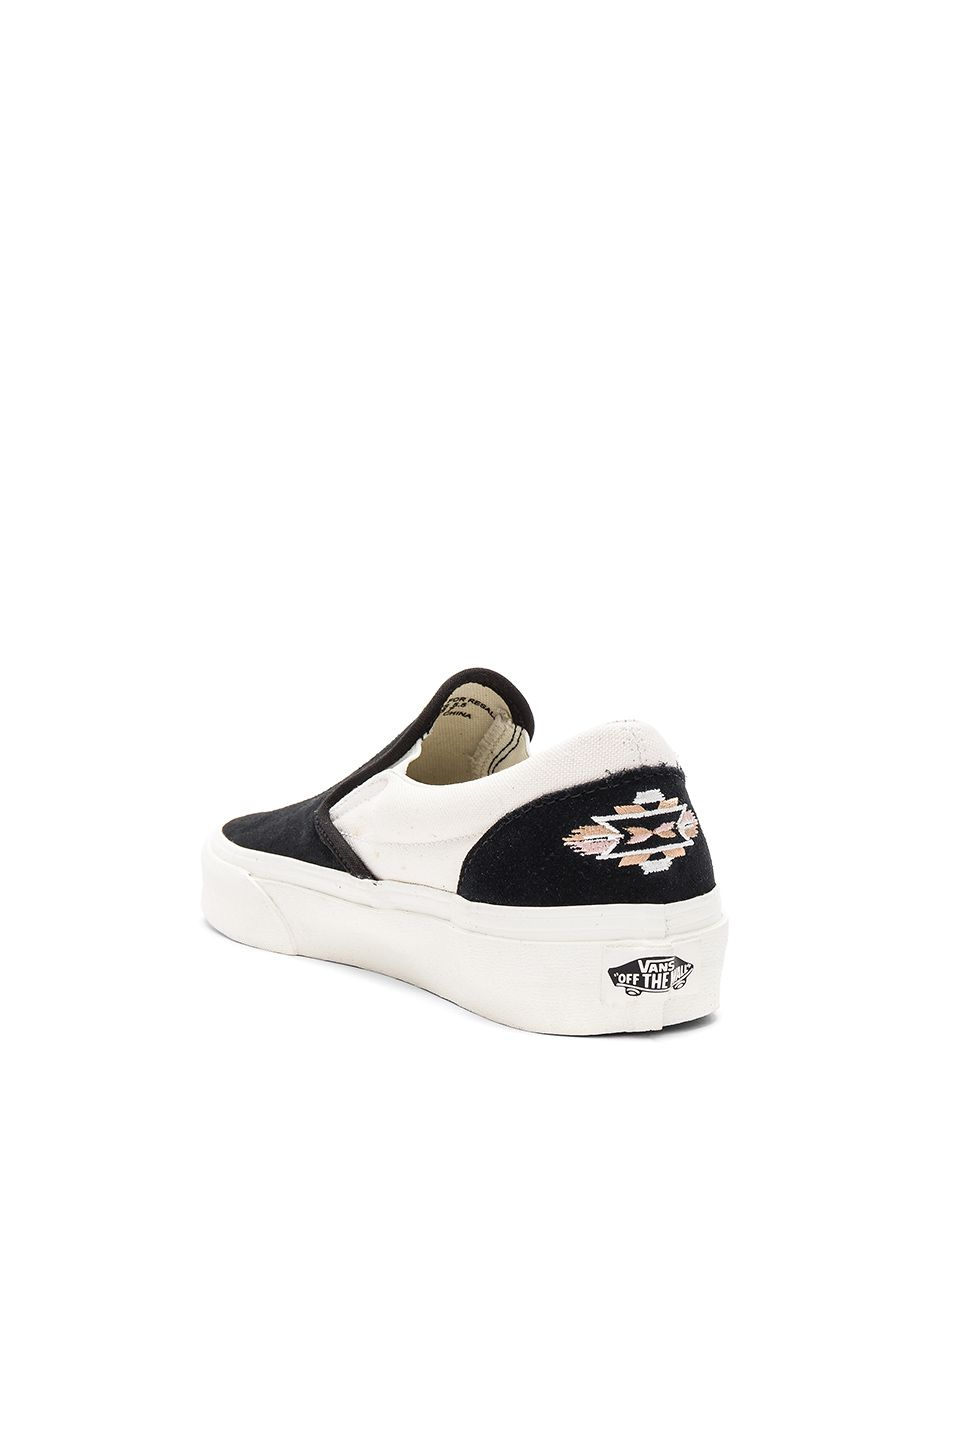 648afa10ae Vans Native Embroidery Classic Slip-On in Black   Marshmallow ...